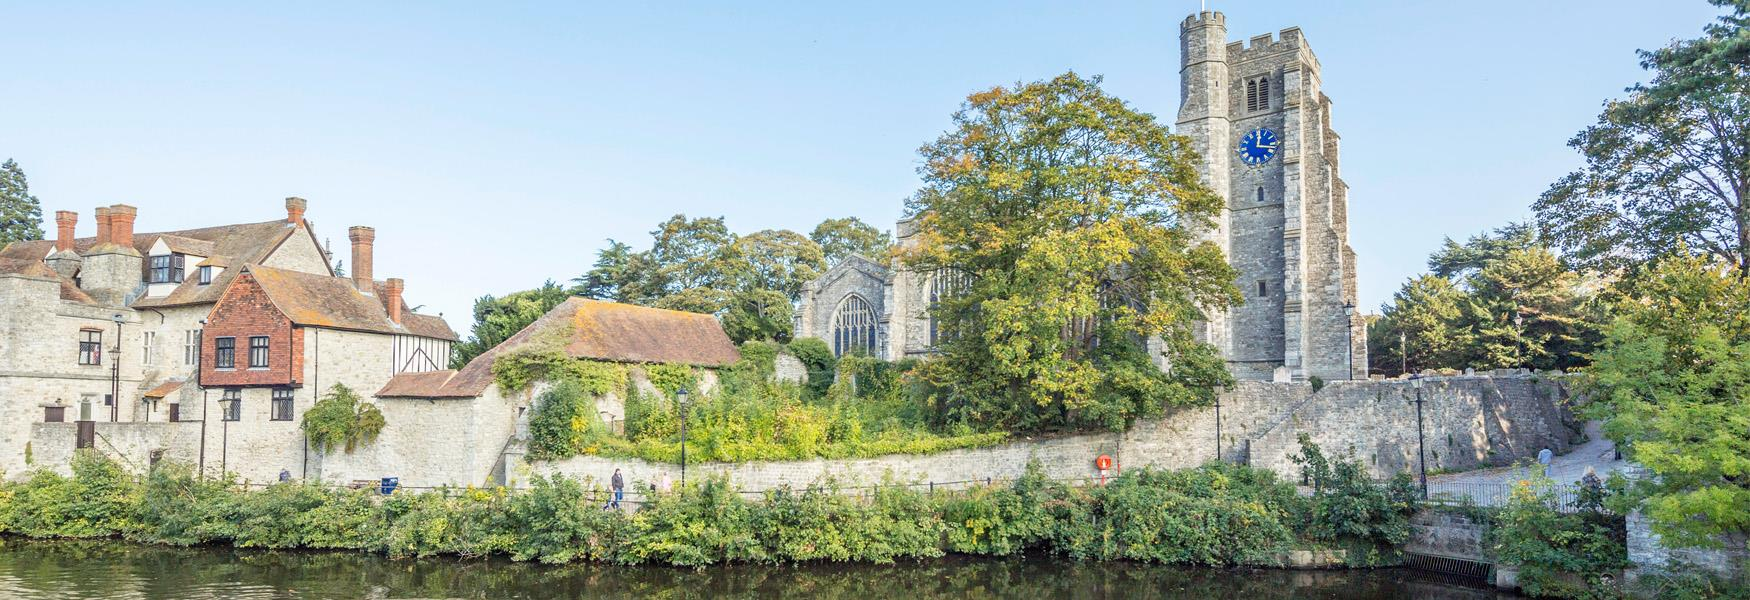 Maidstone's Medieval origins in the heart of the town